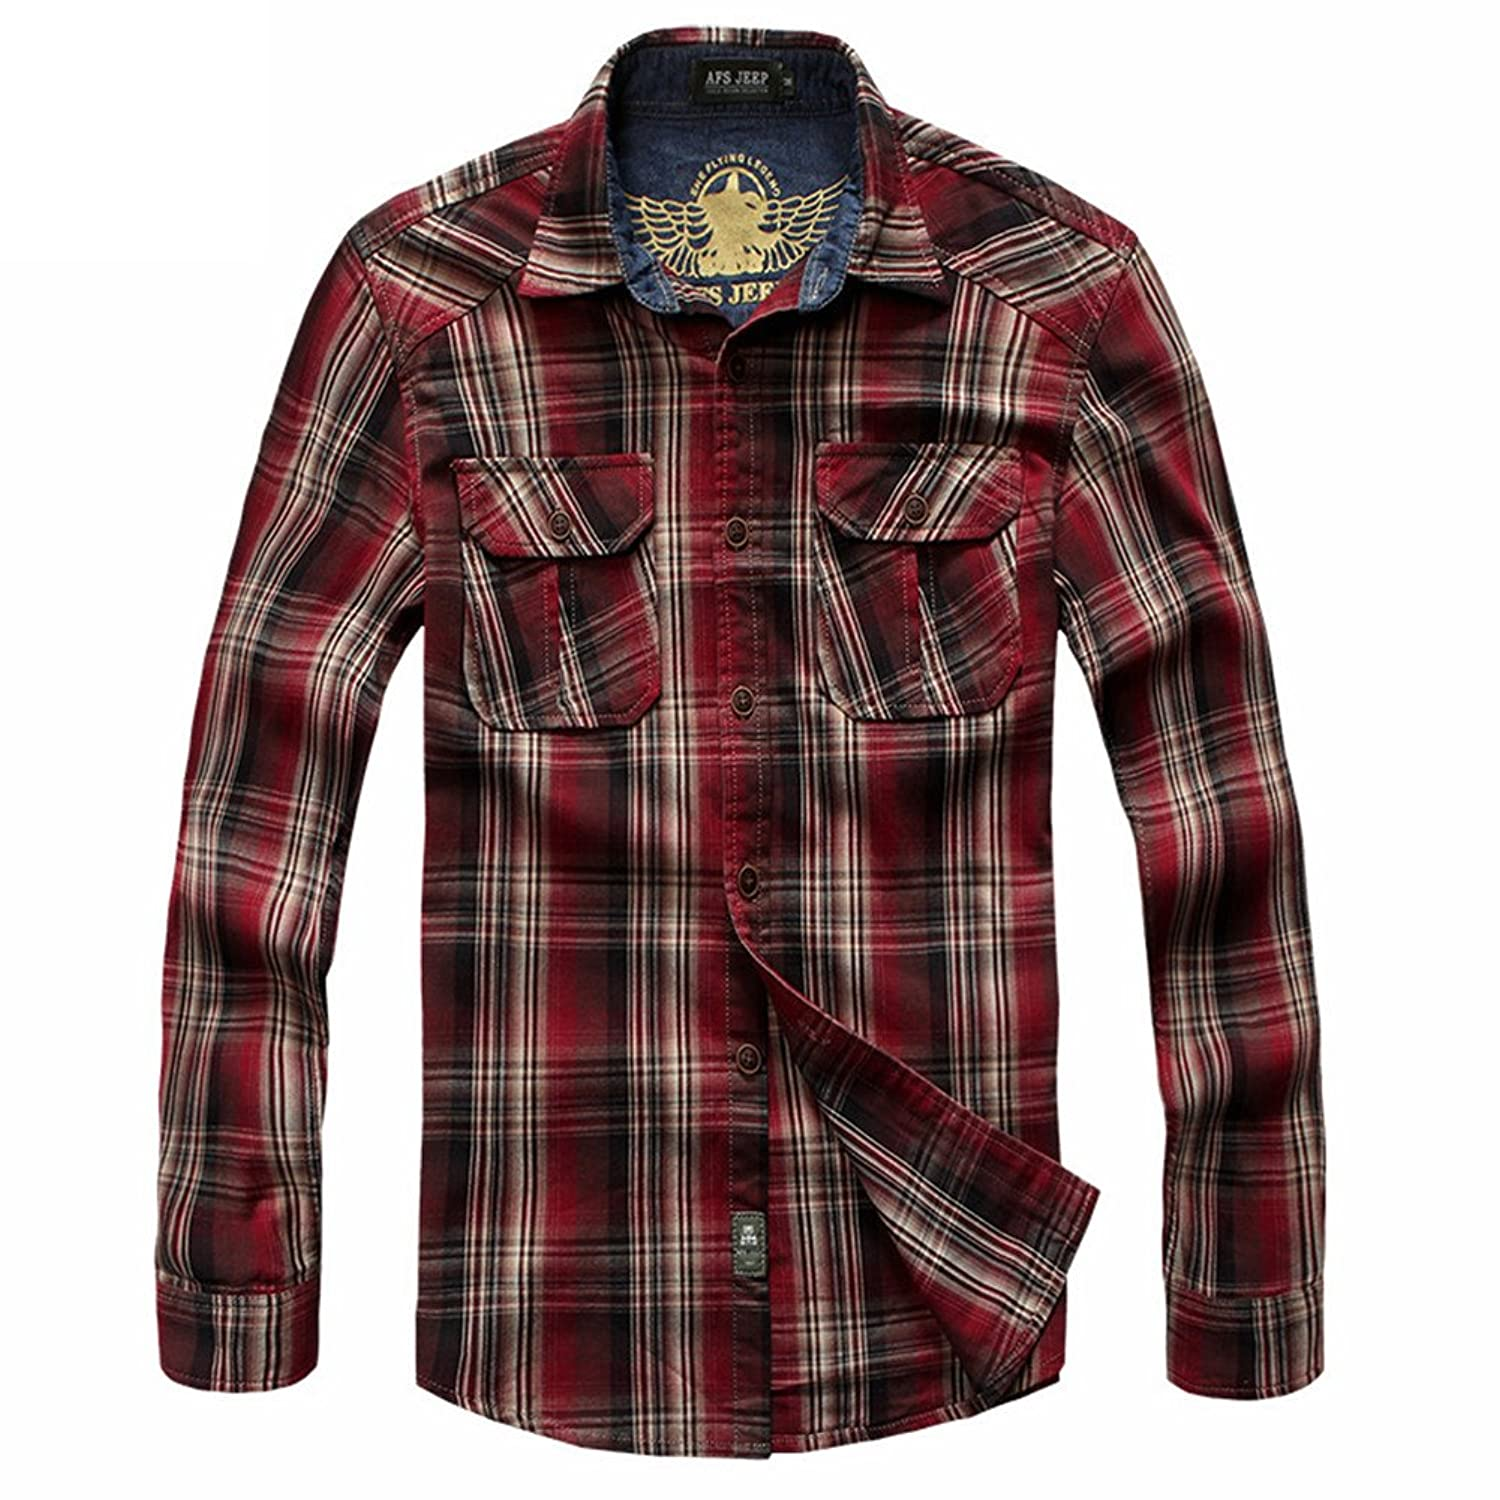 Men's Casual Plaid Shirts Long Sleeve Mulit-Pockets 1377